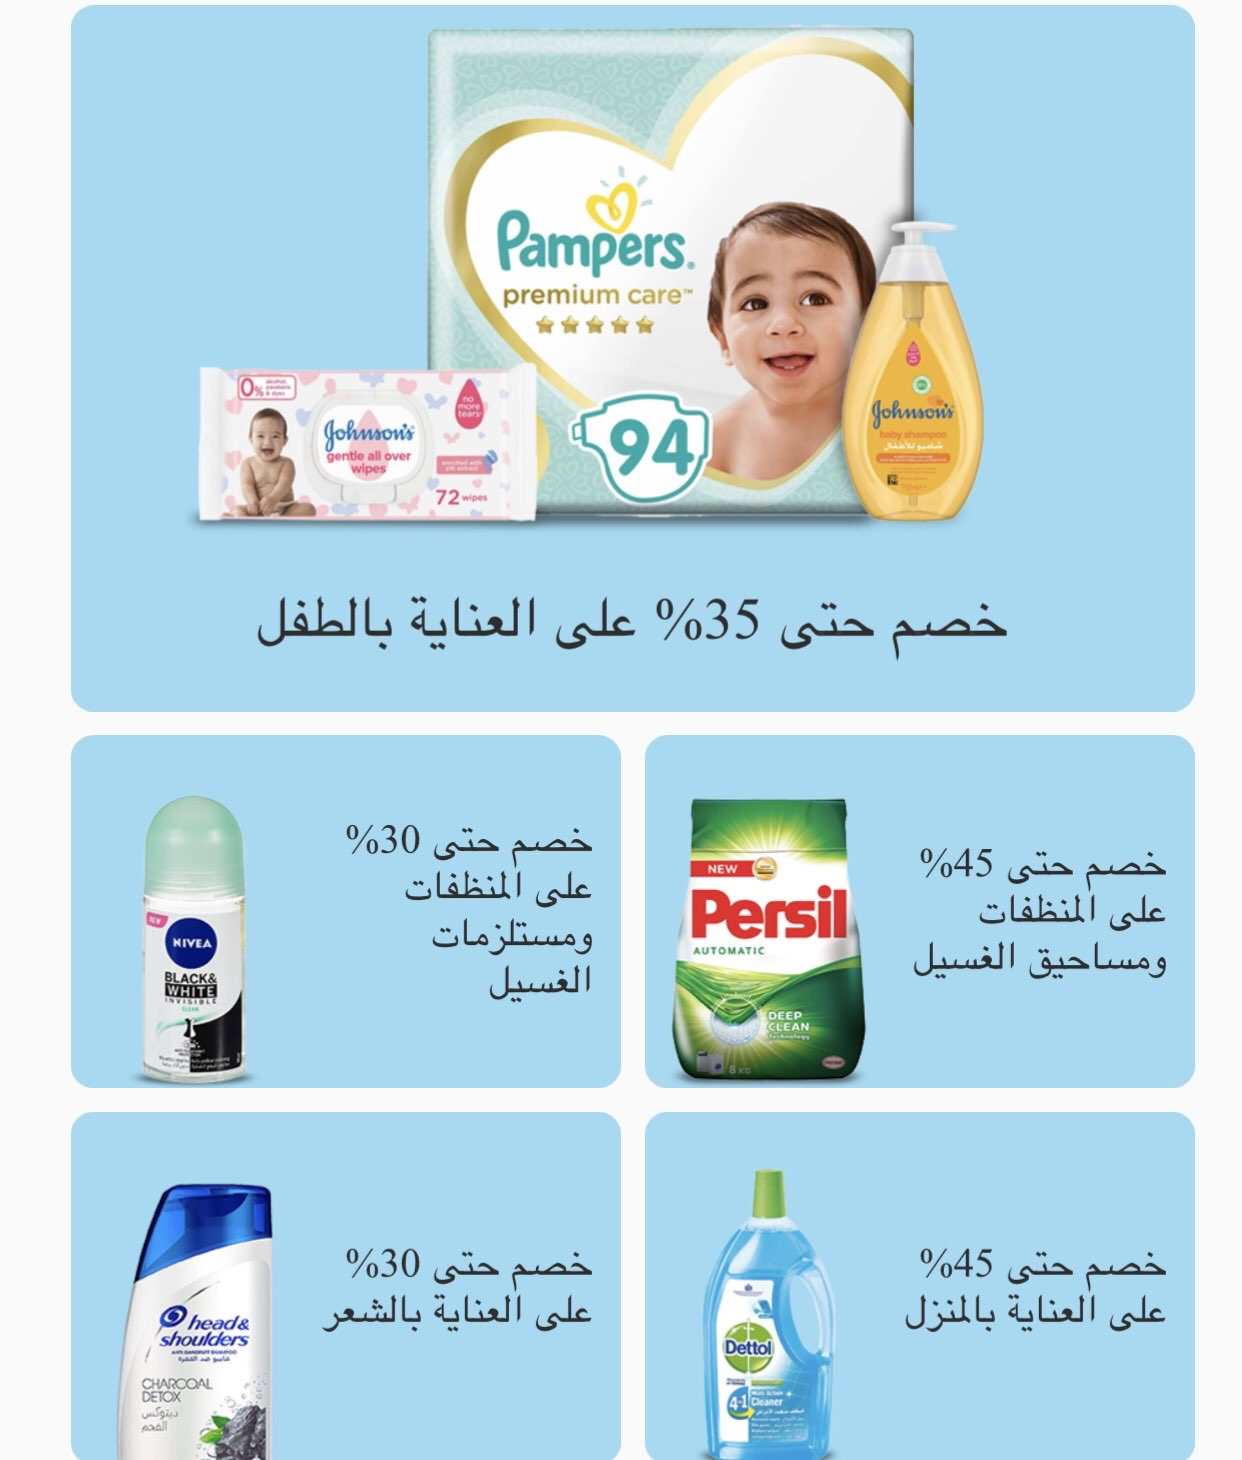 New Carrefour Egypt introduces 50 EGP discount codes on your first order. 5